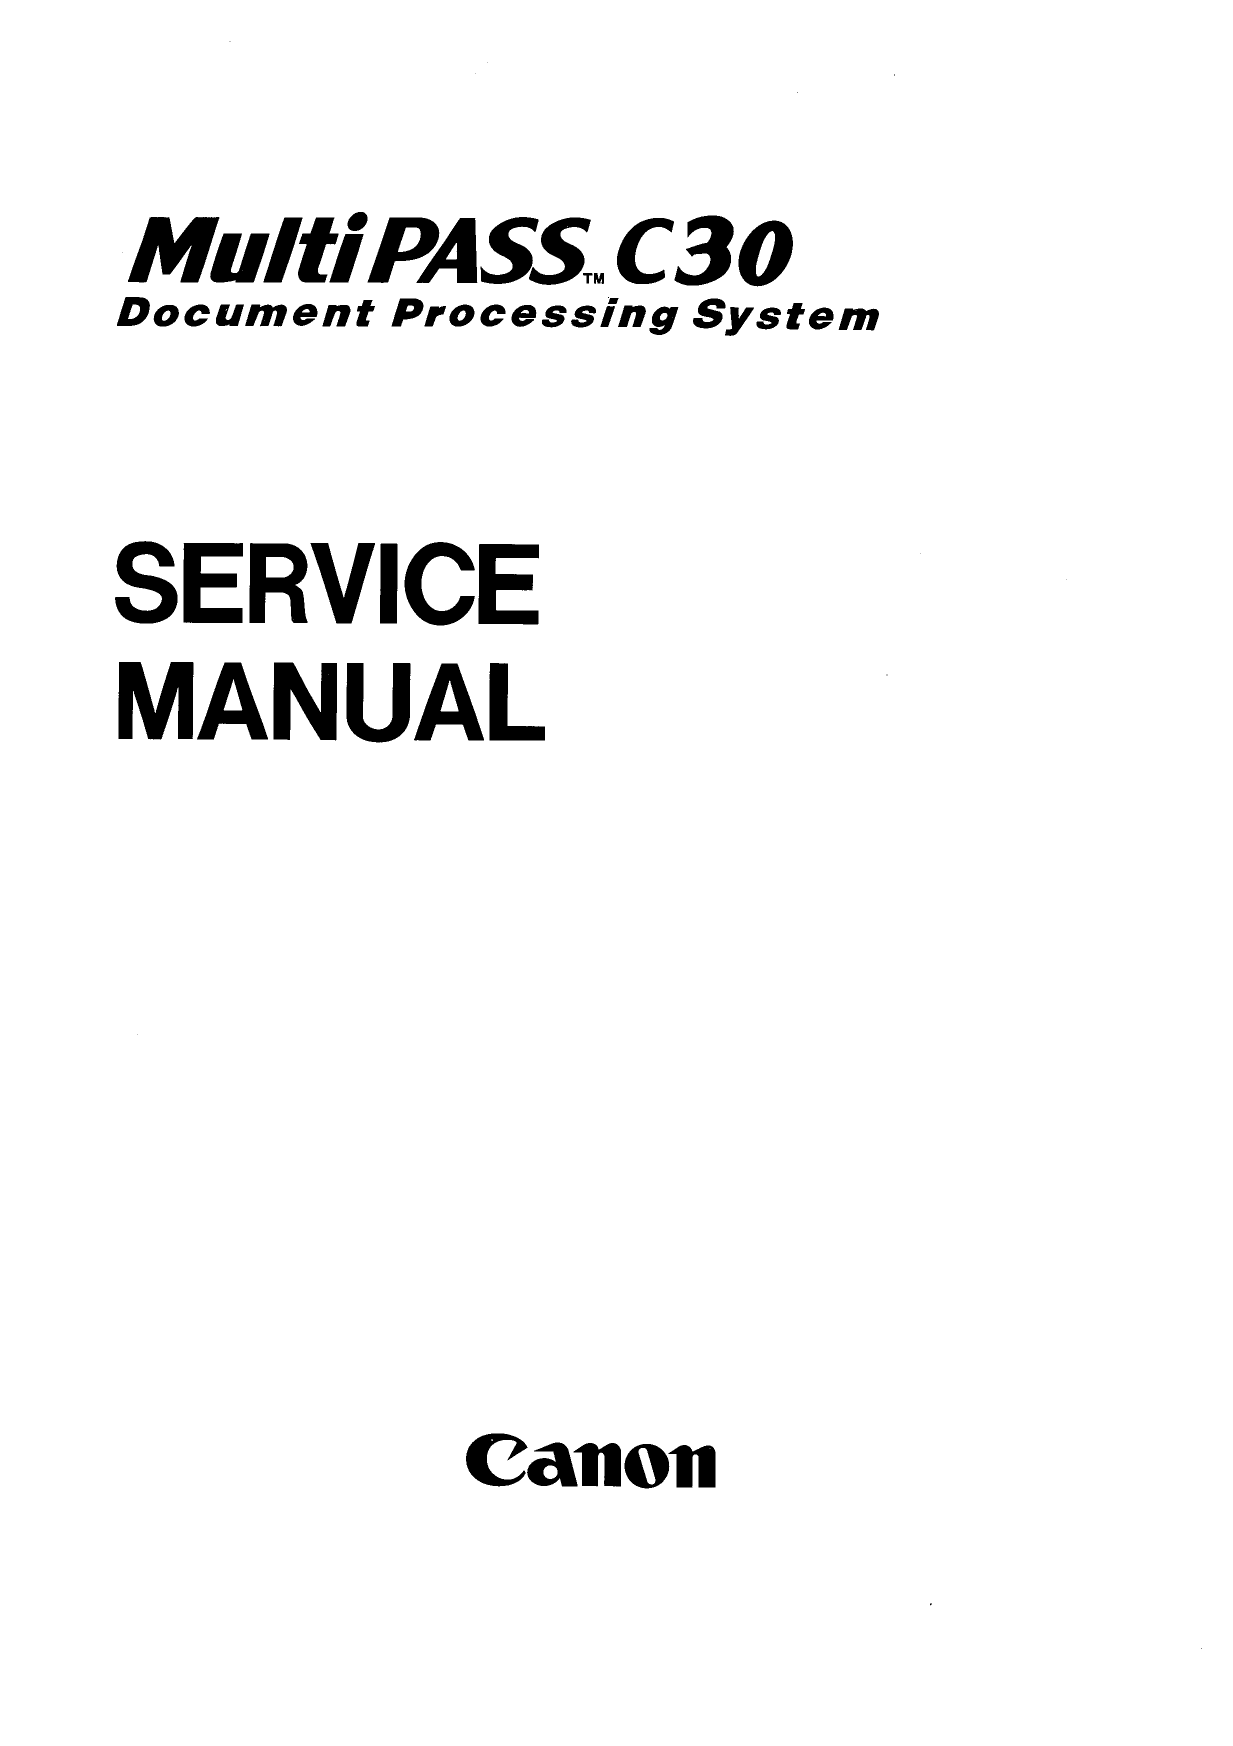 Canon FAX MultiPass-C30 Parts and Service Manual